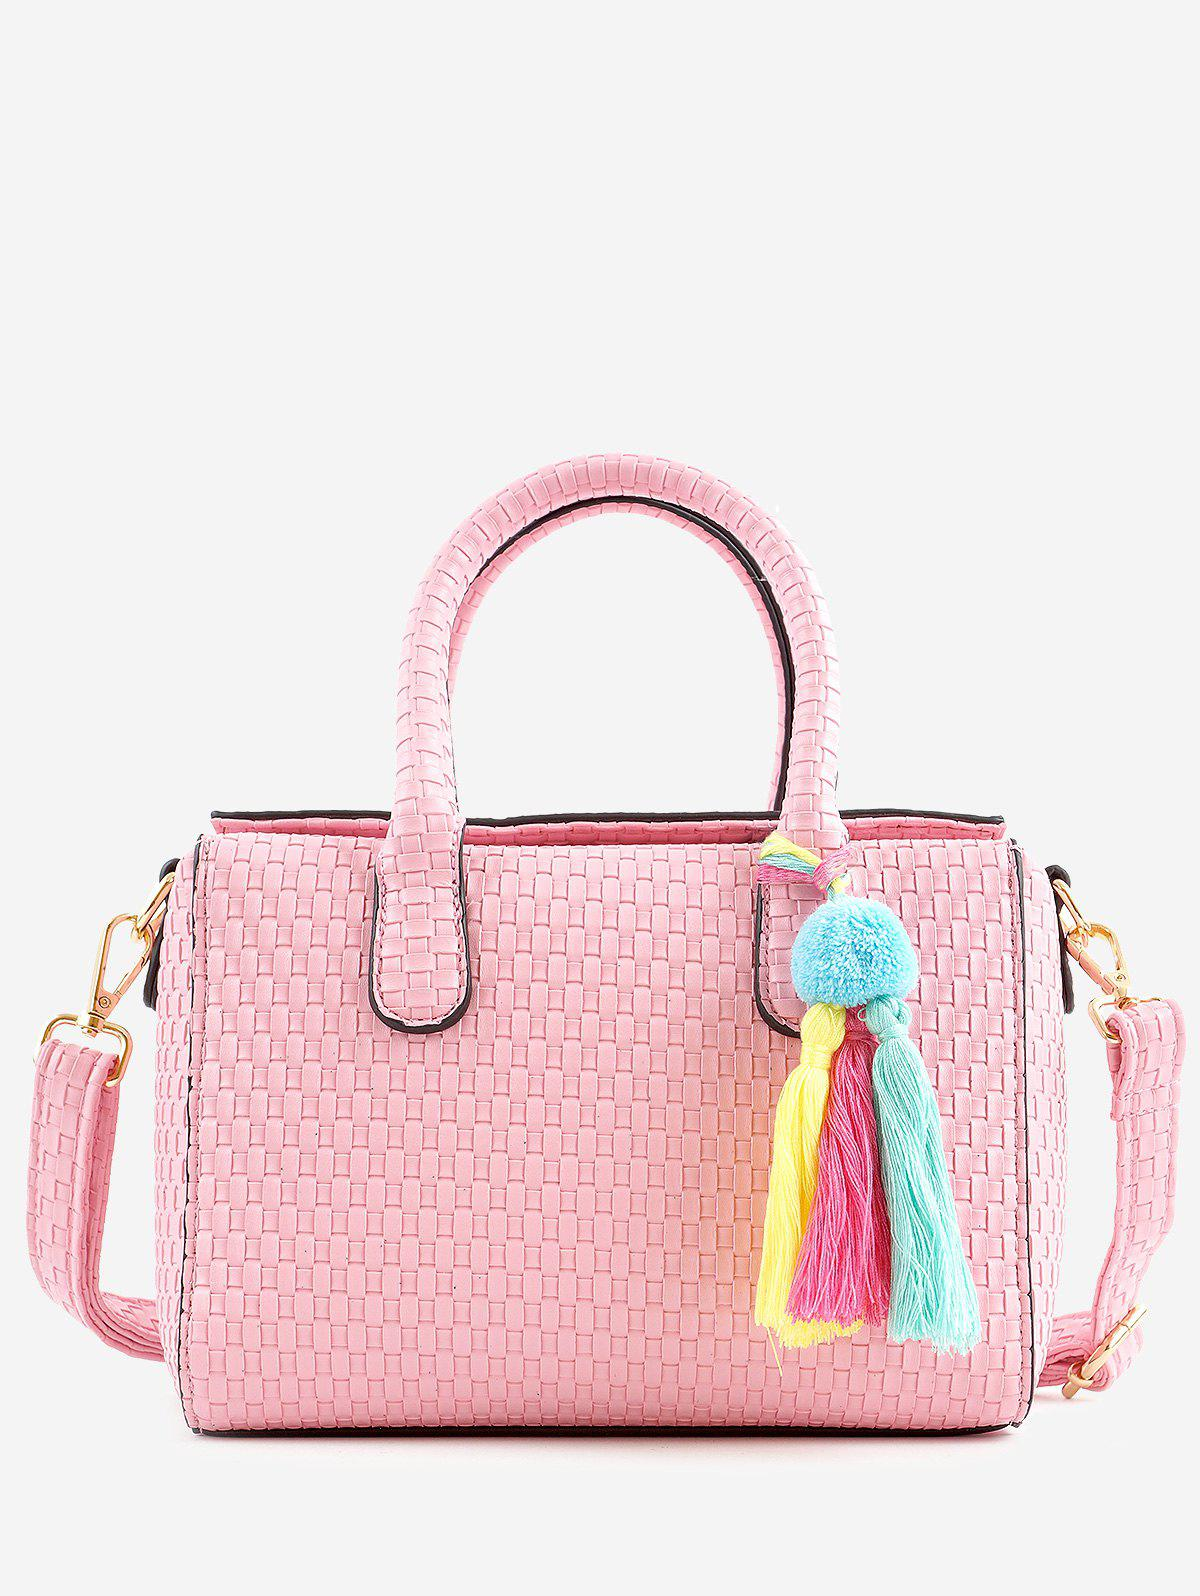 Hot Minimalist Leisure Vacation Tassels Braid Handbag